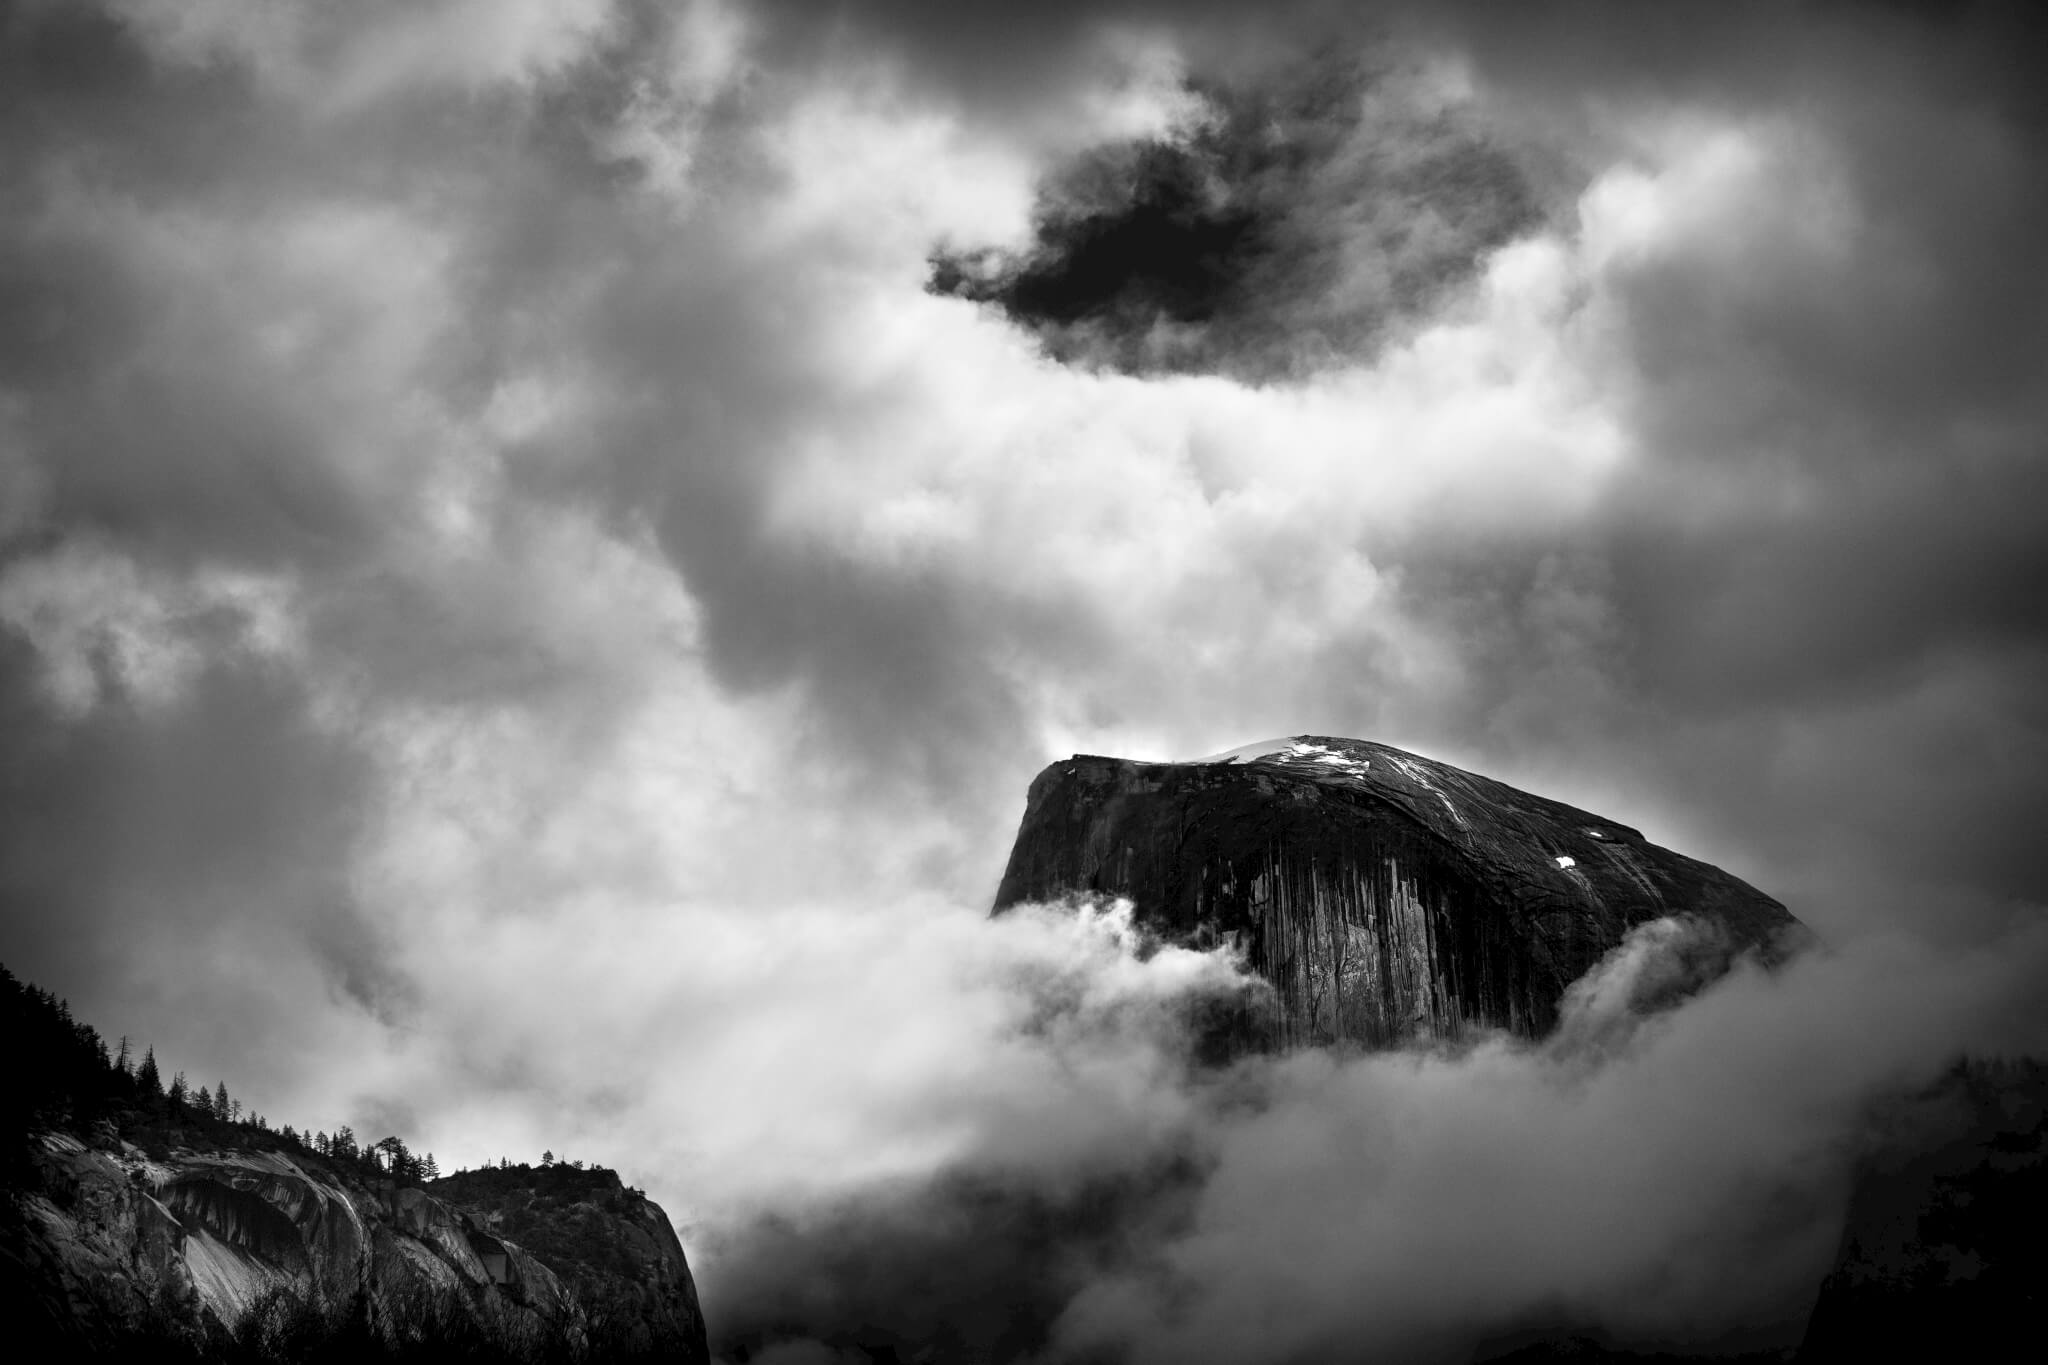 Yosemite-Half-Dome-in-the-Clouds-9387